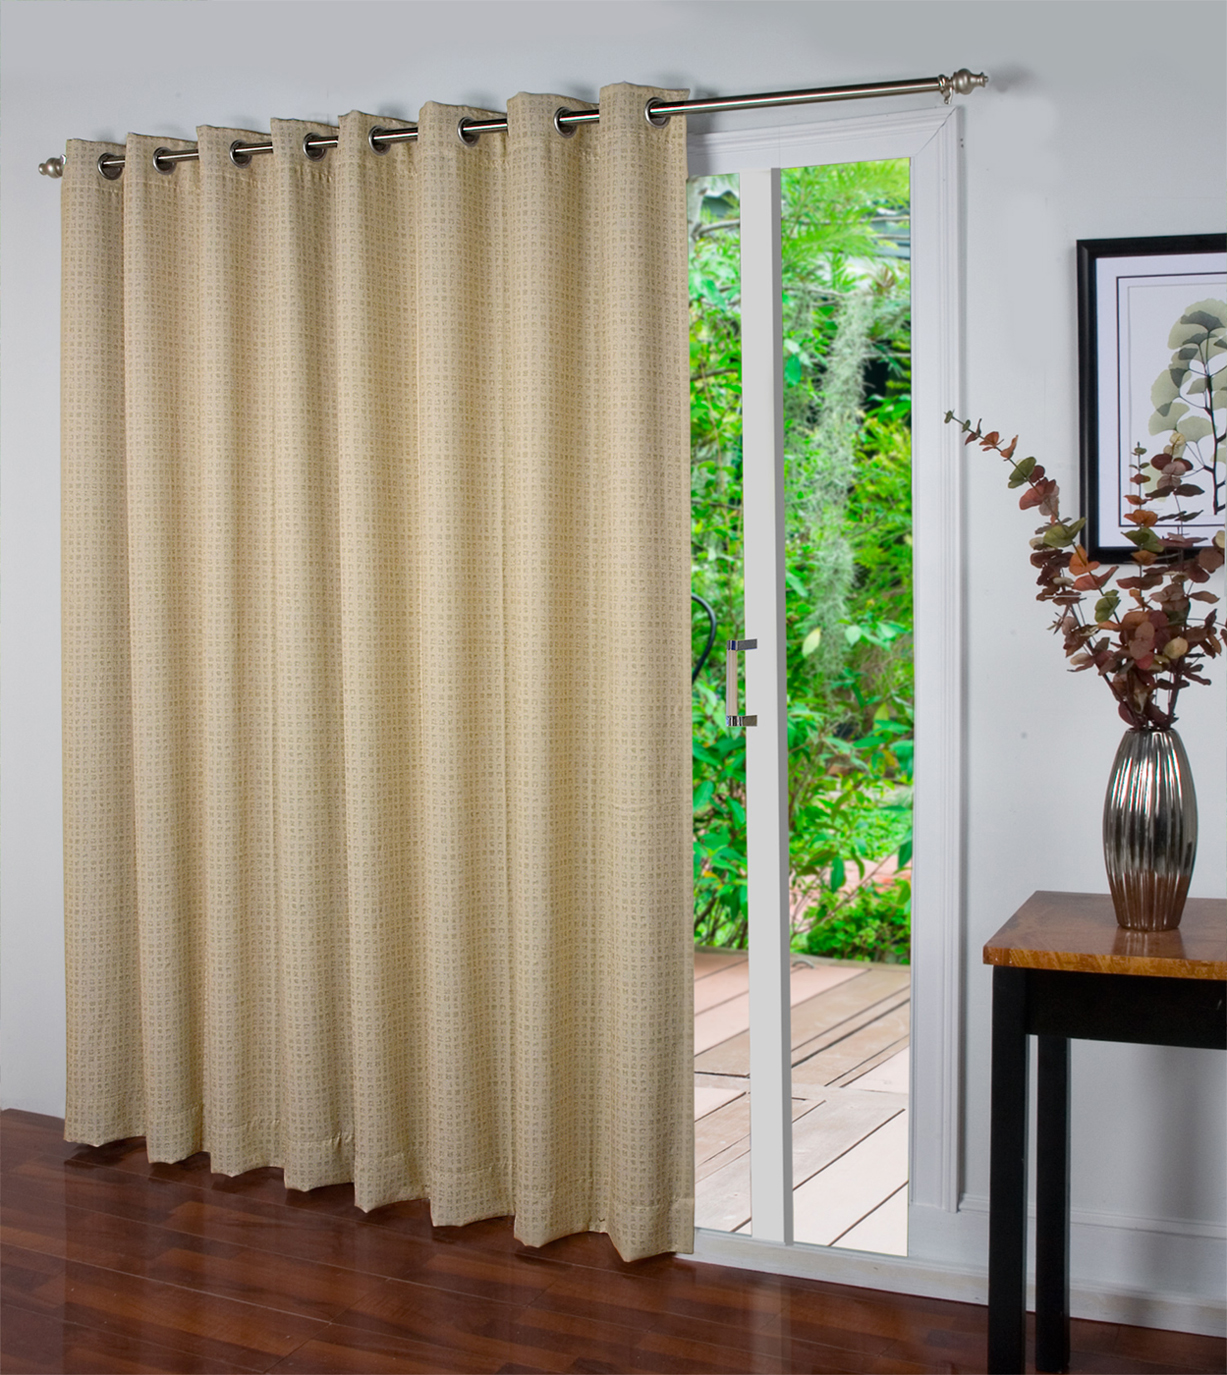 sliding patio door glass modern ideas curtains drapes